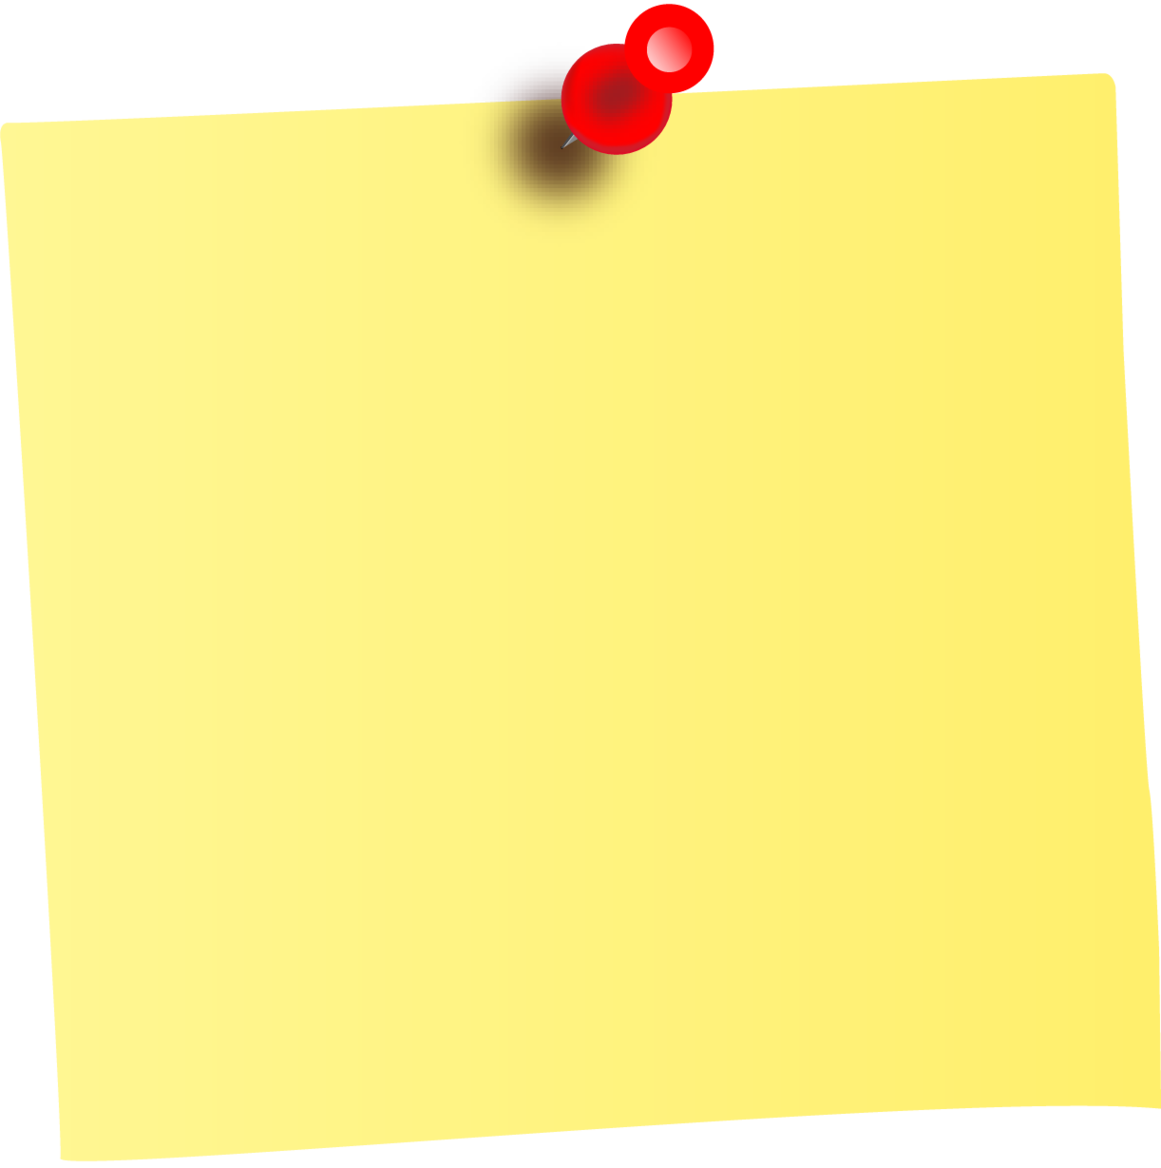 Stickynotes HD PNG - 92469